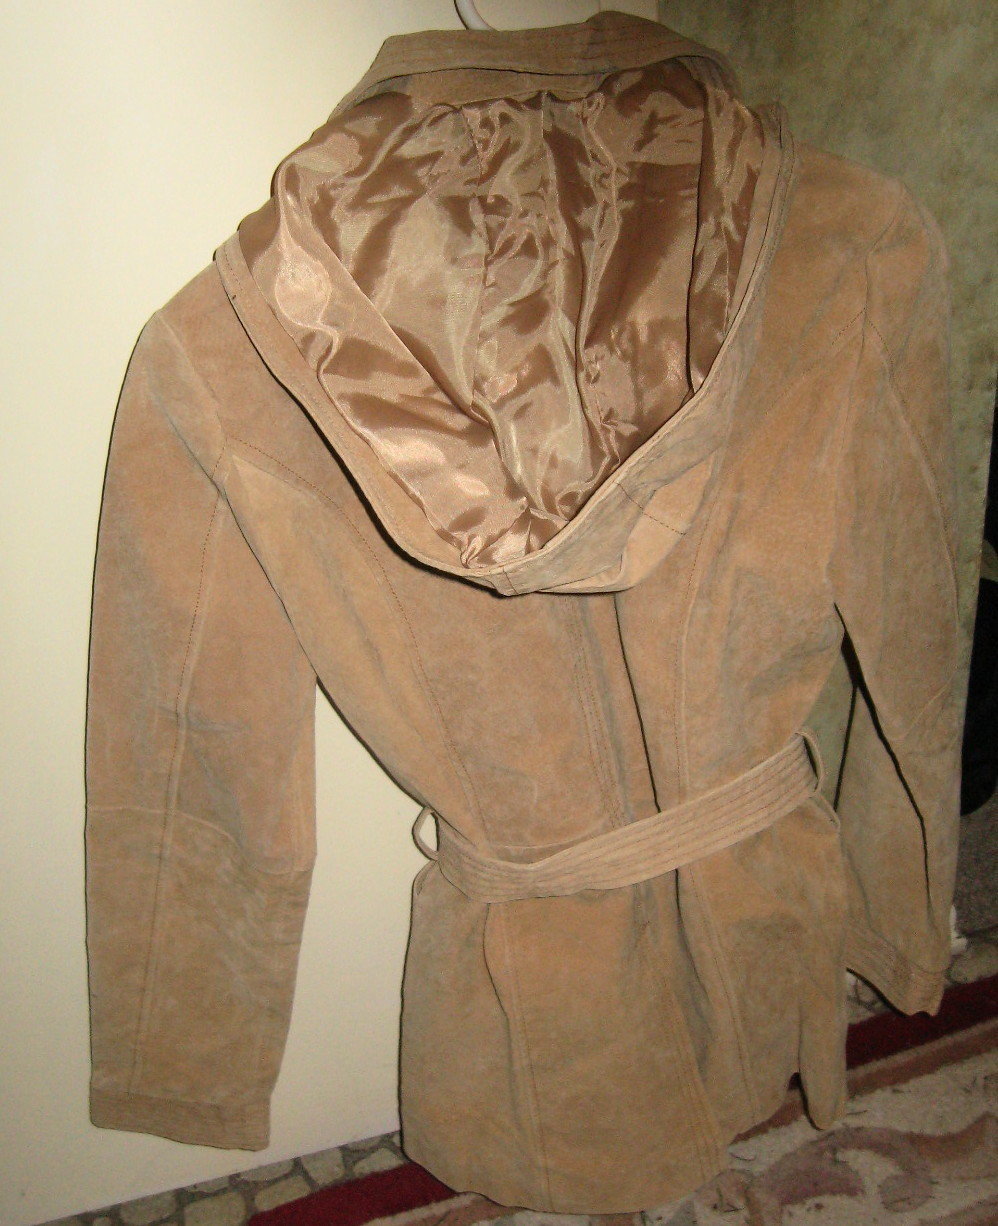 LADIES REAL LEATHER JACKET WITH HOOD BY MARCELLE RENEE, FULLY LINED, SIZE MEDIUM